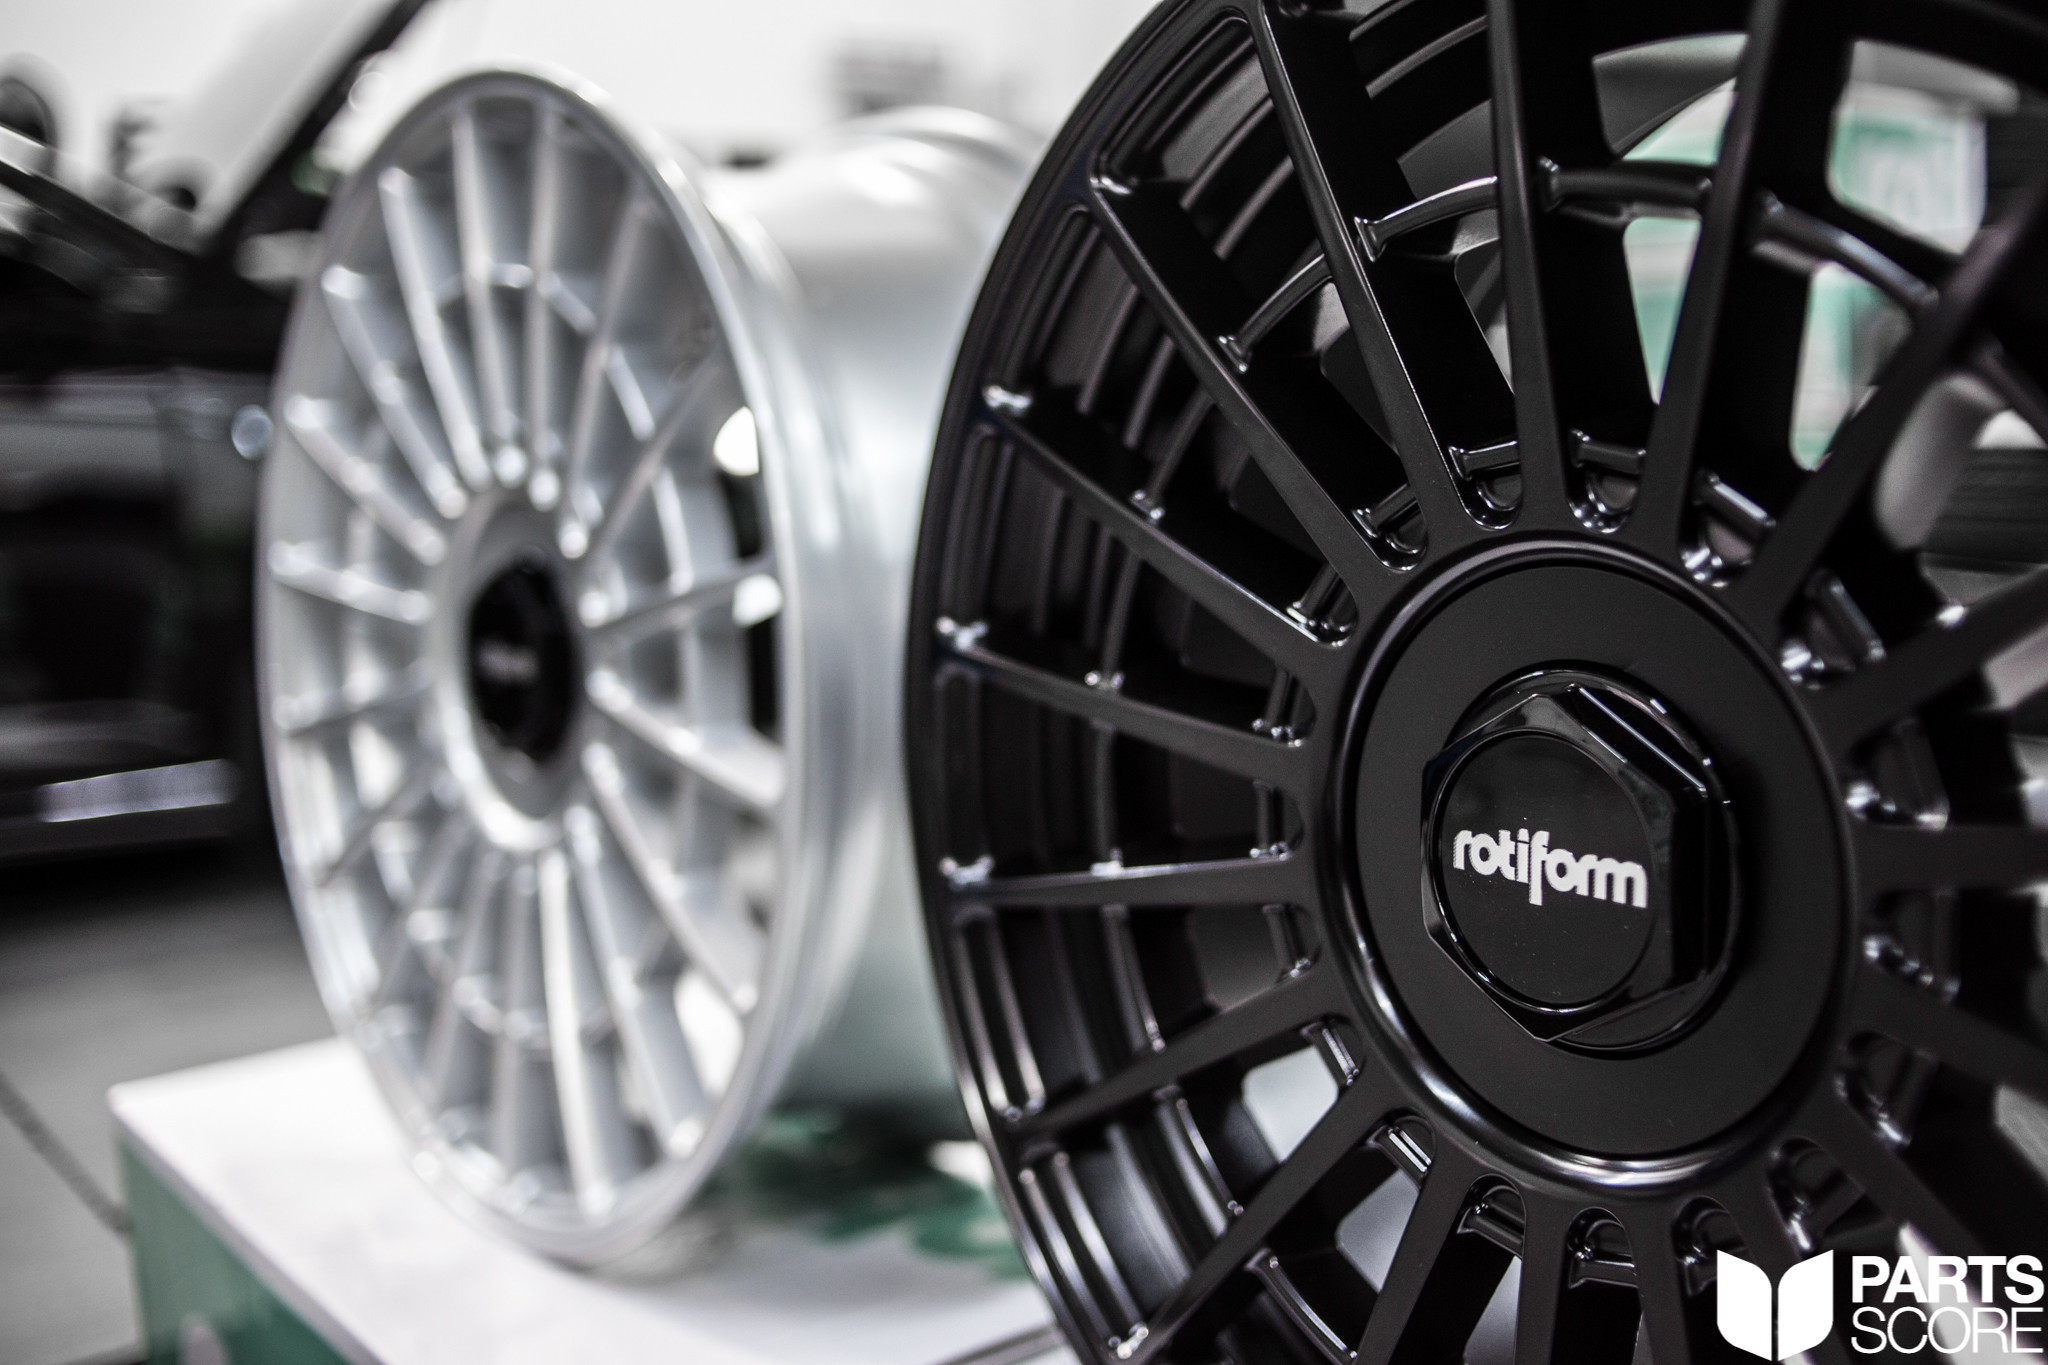 parts score, rotiform, rotiform lasr, rotiform las-r, rotiform las r, rotiform wheels, wheels, vw wheels, audi wheels, audi wheels scottsdale, vw wheels scottsdale, vw wheels phoenix, vw wheels tempe, vw wheels az, wheels game, new wheels